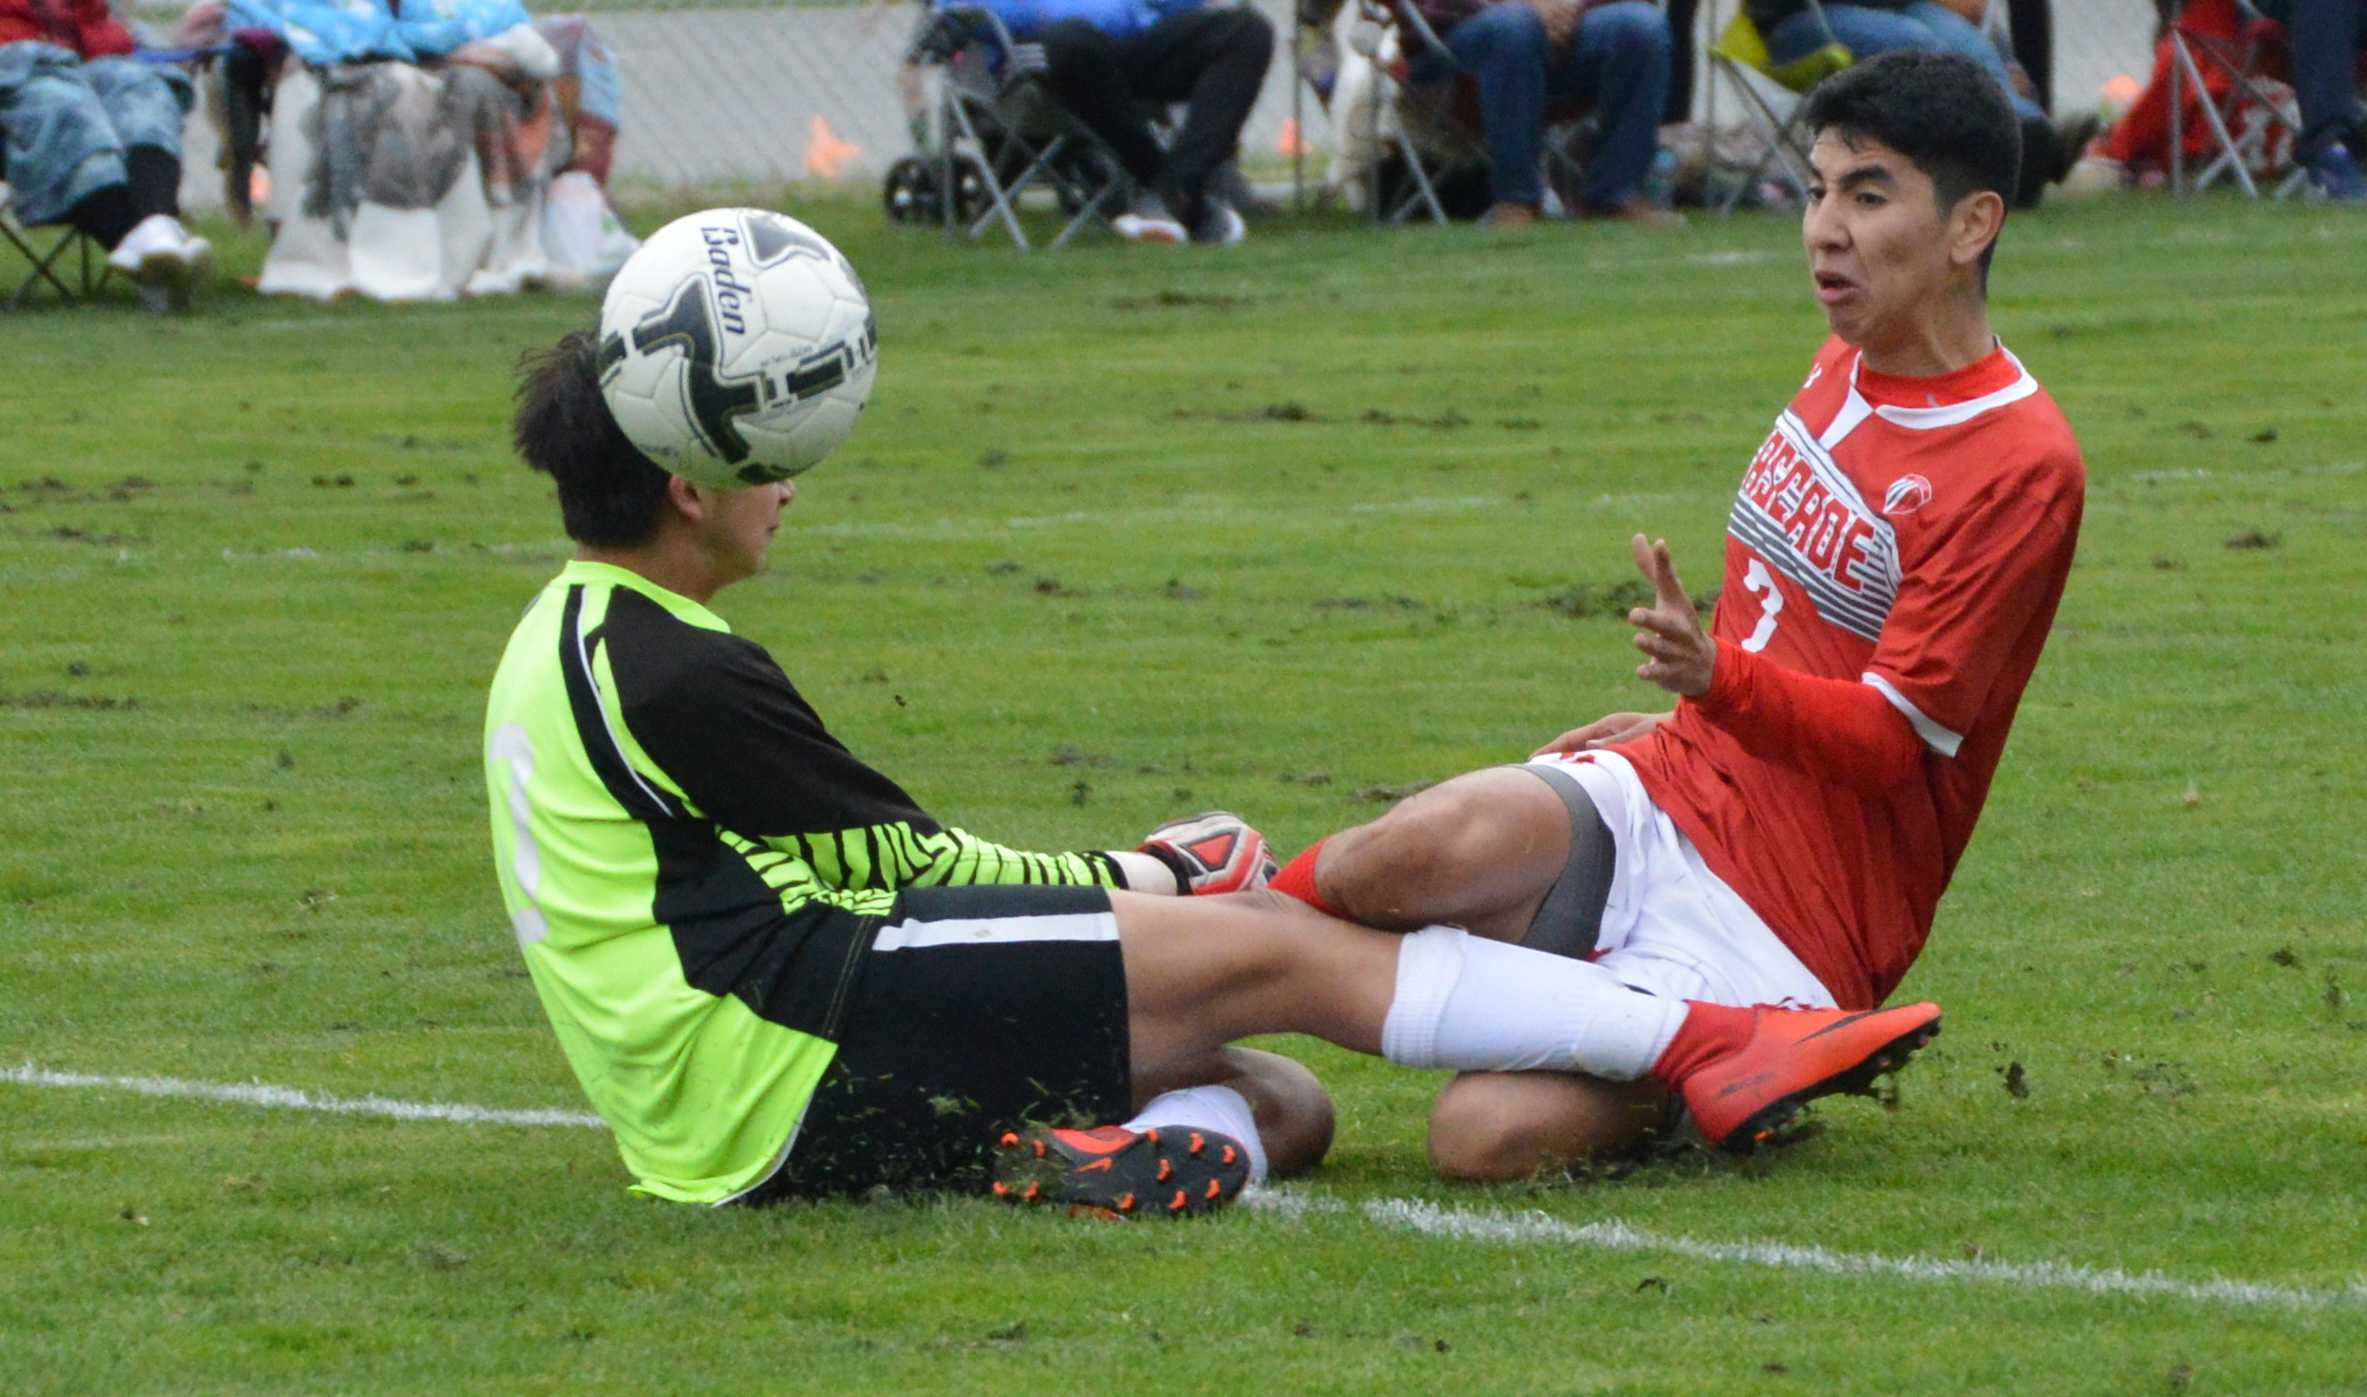 Cascade's Raul Mata watches the ball soar pasts the opposing goalkeeper on its way to the net.